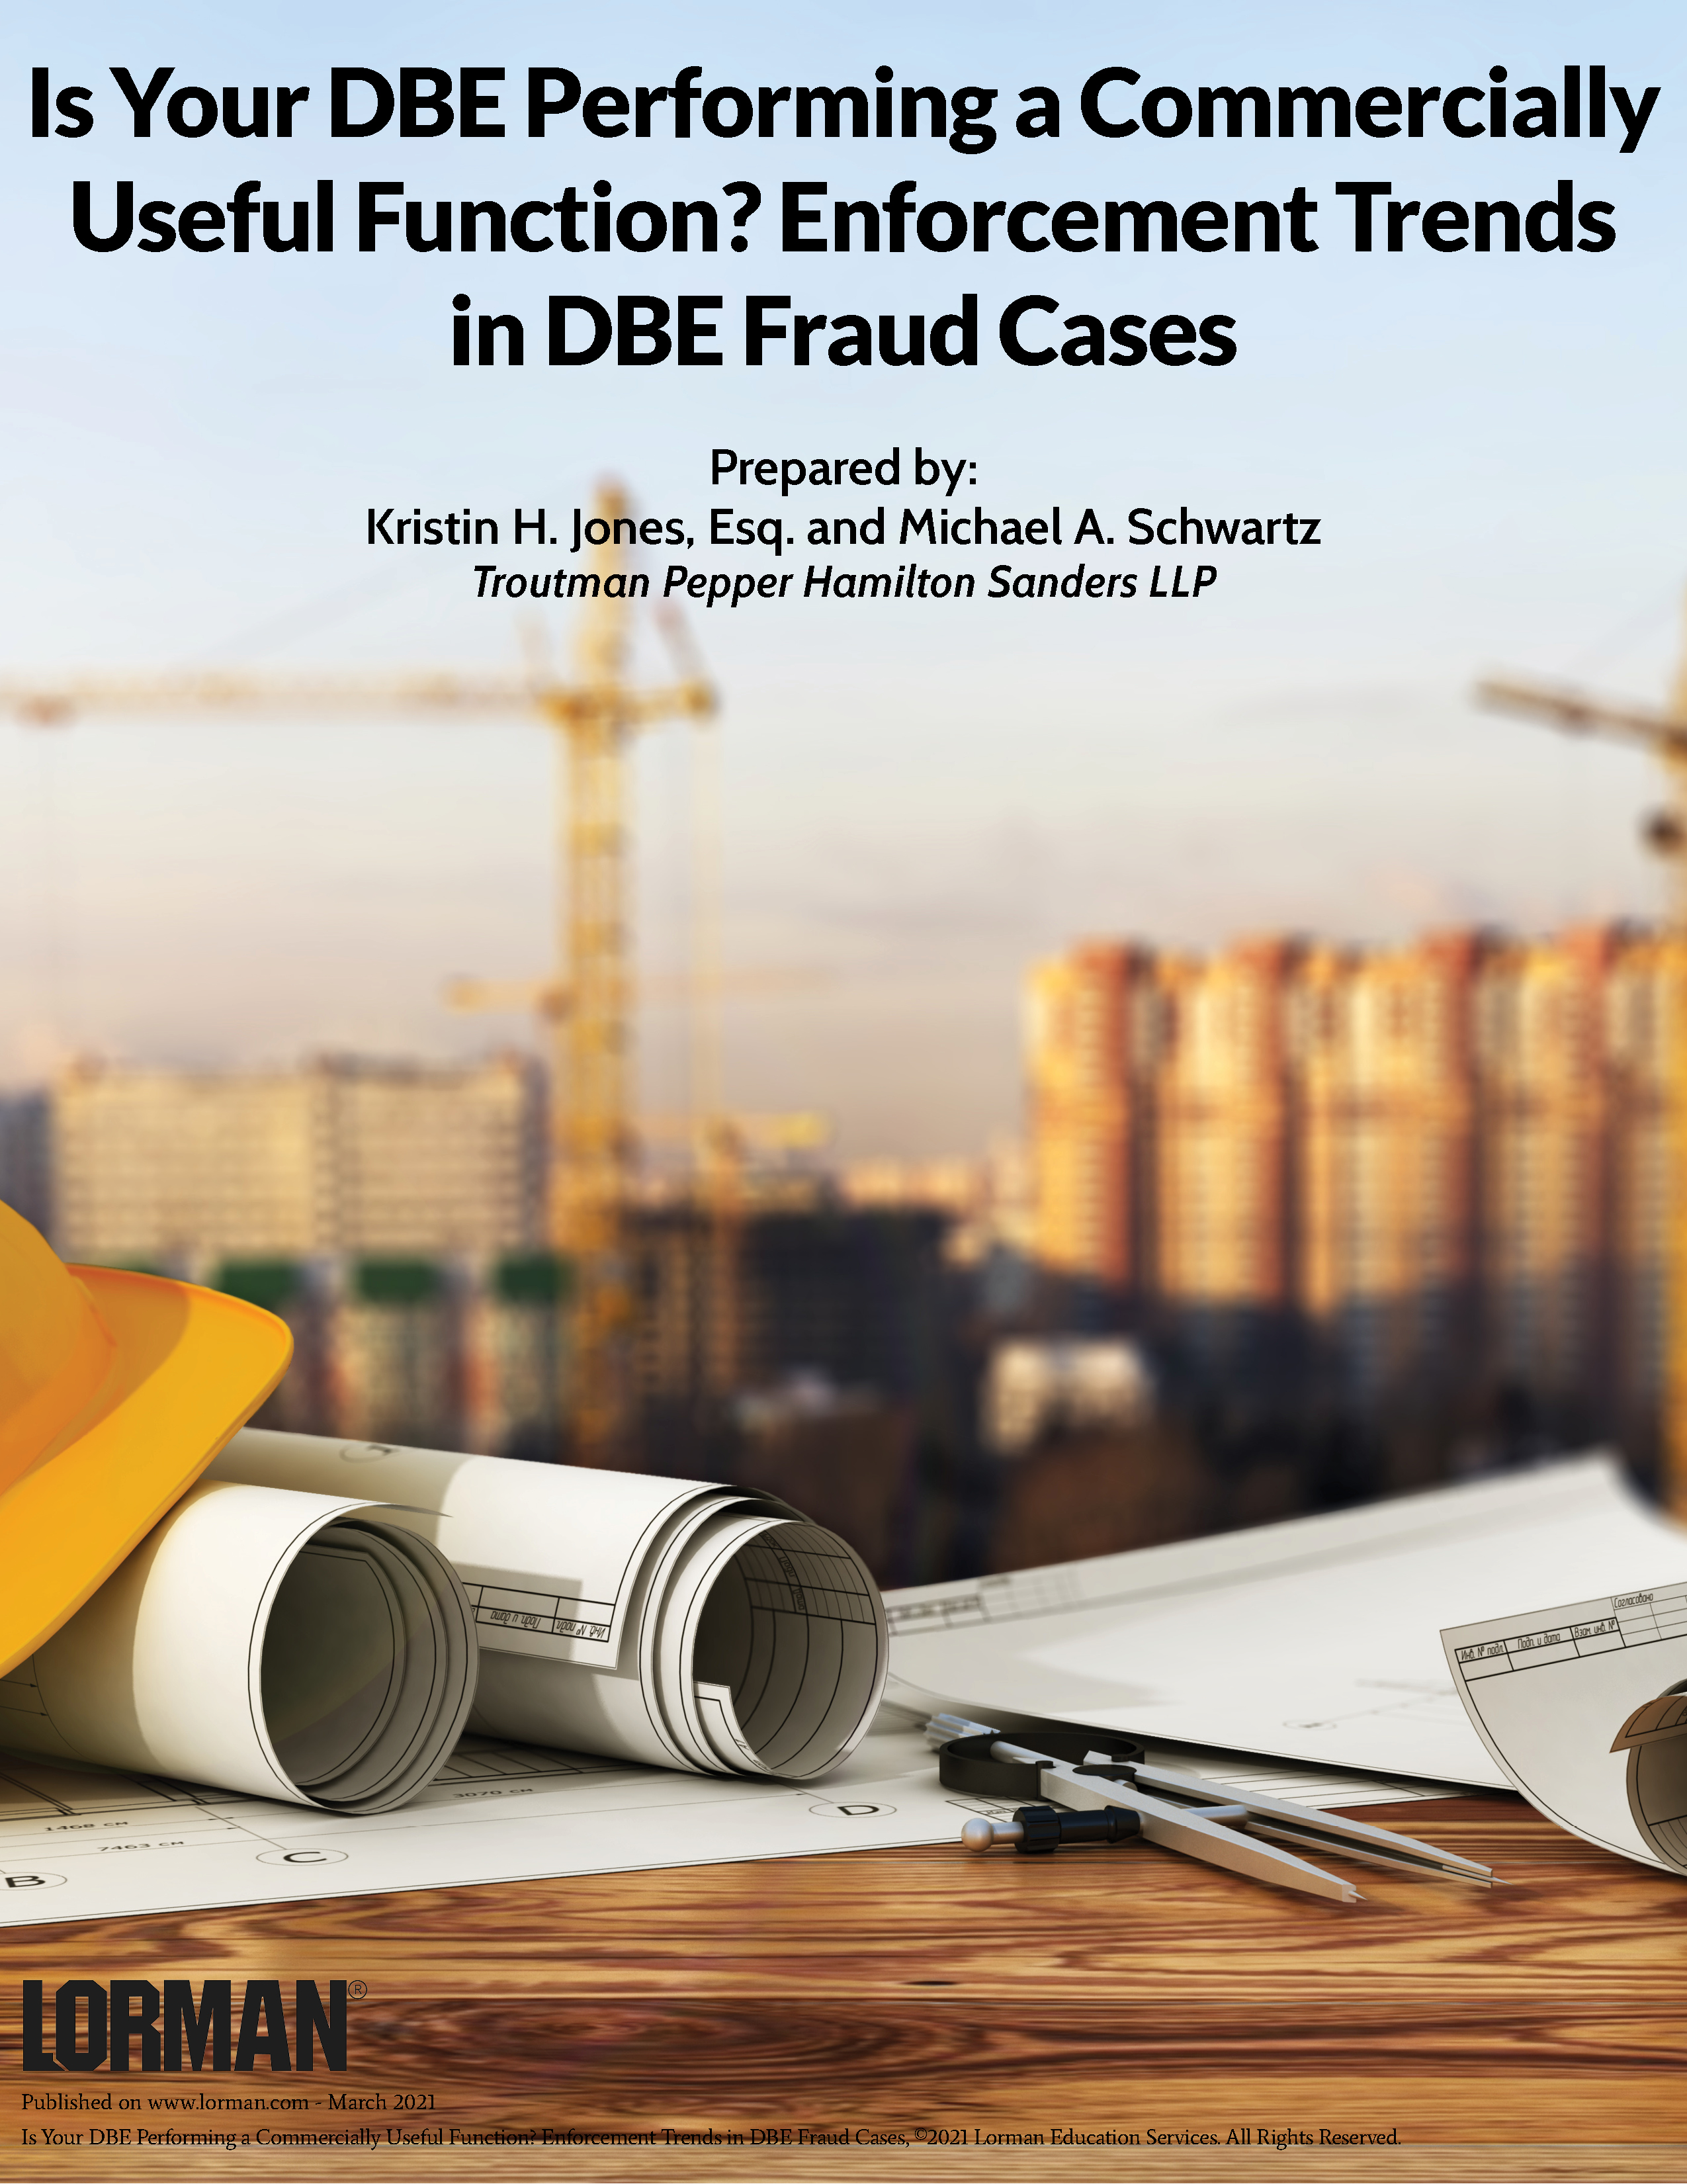 Is Your DBE Performing a Commercially Useful Function? Enforcement Trends in DBE Fraud Cases